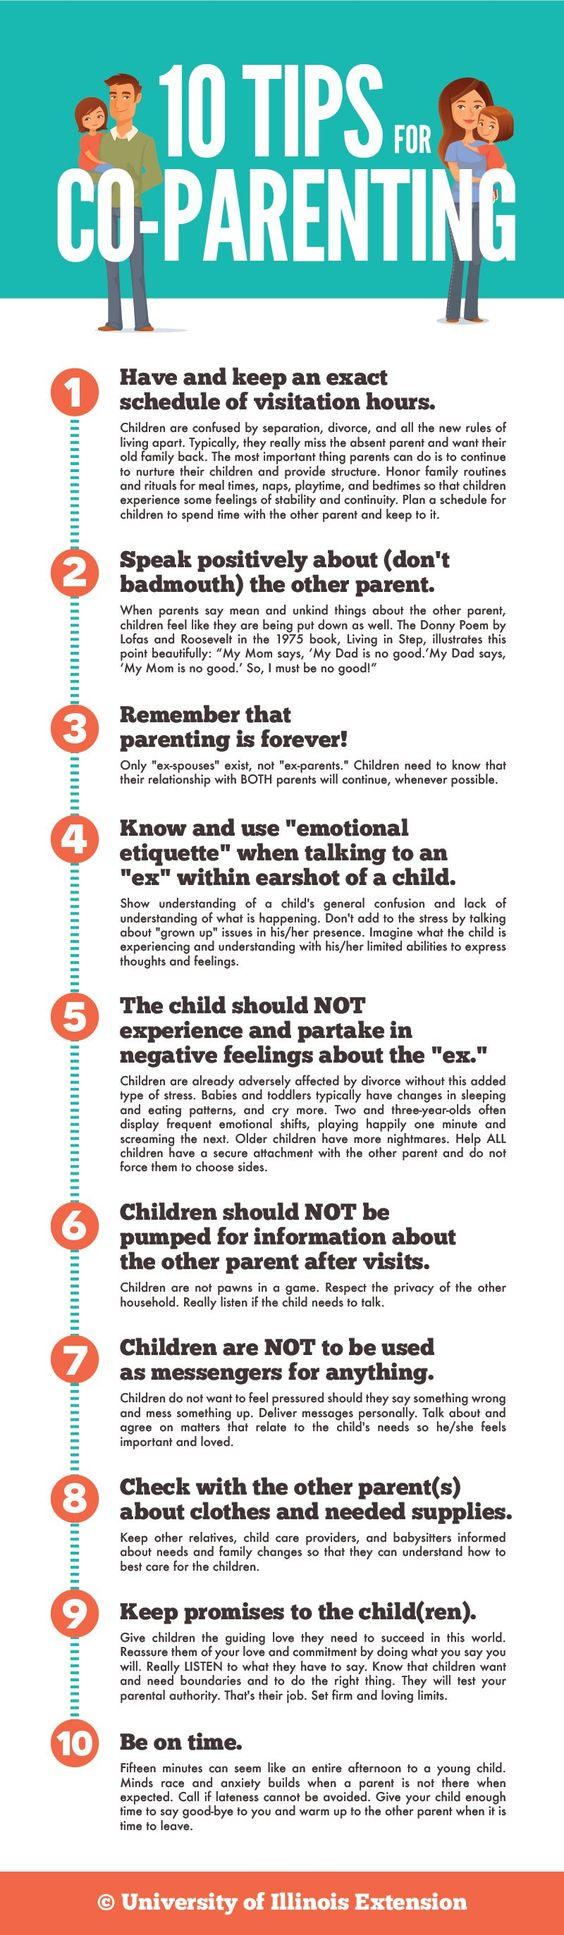 Tips for Co-Parenting